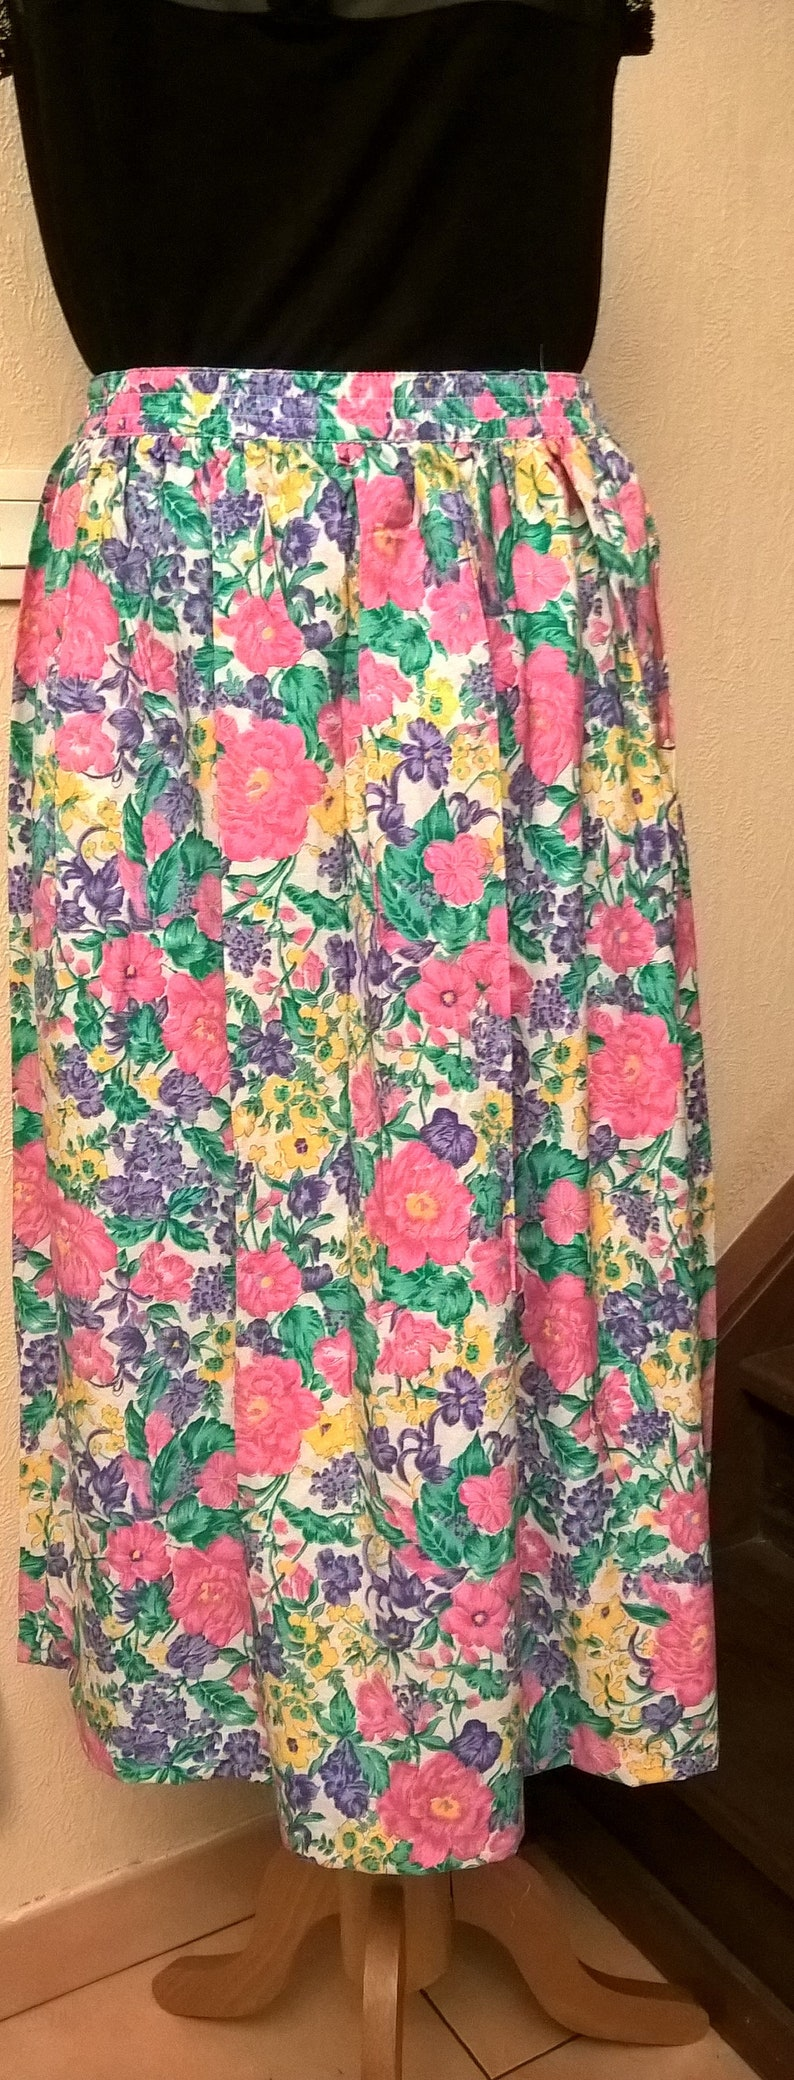 white Made in France vintage clothing girl gift pink green and blue vintage gift Vintage skirt cotton year 80 women gift